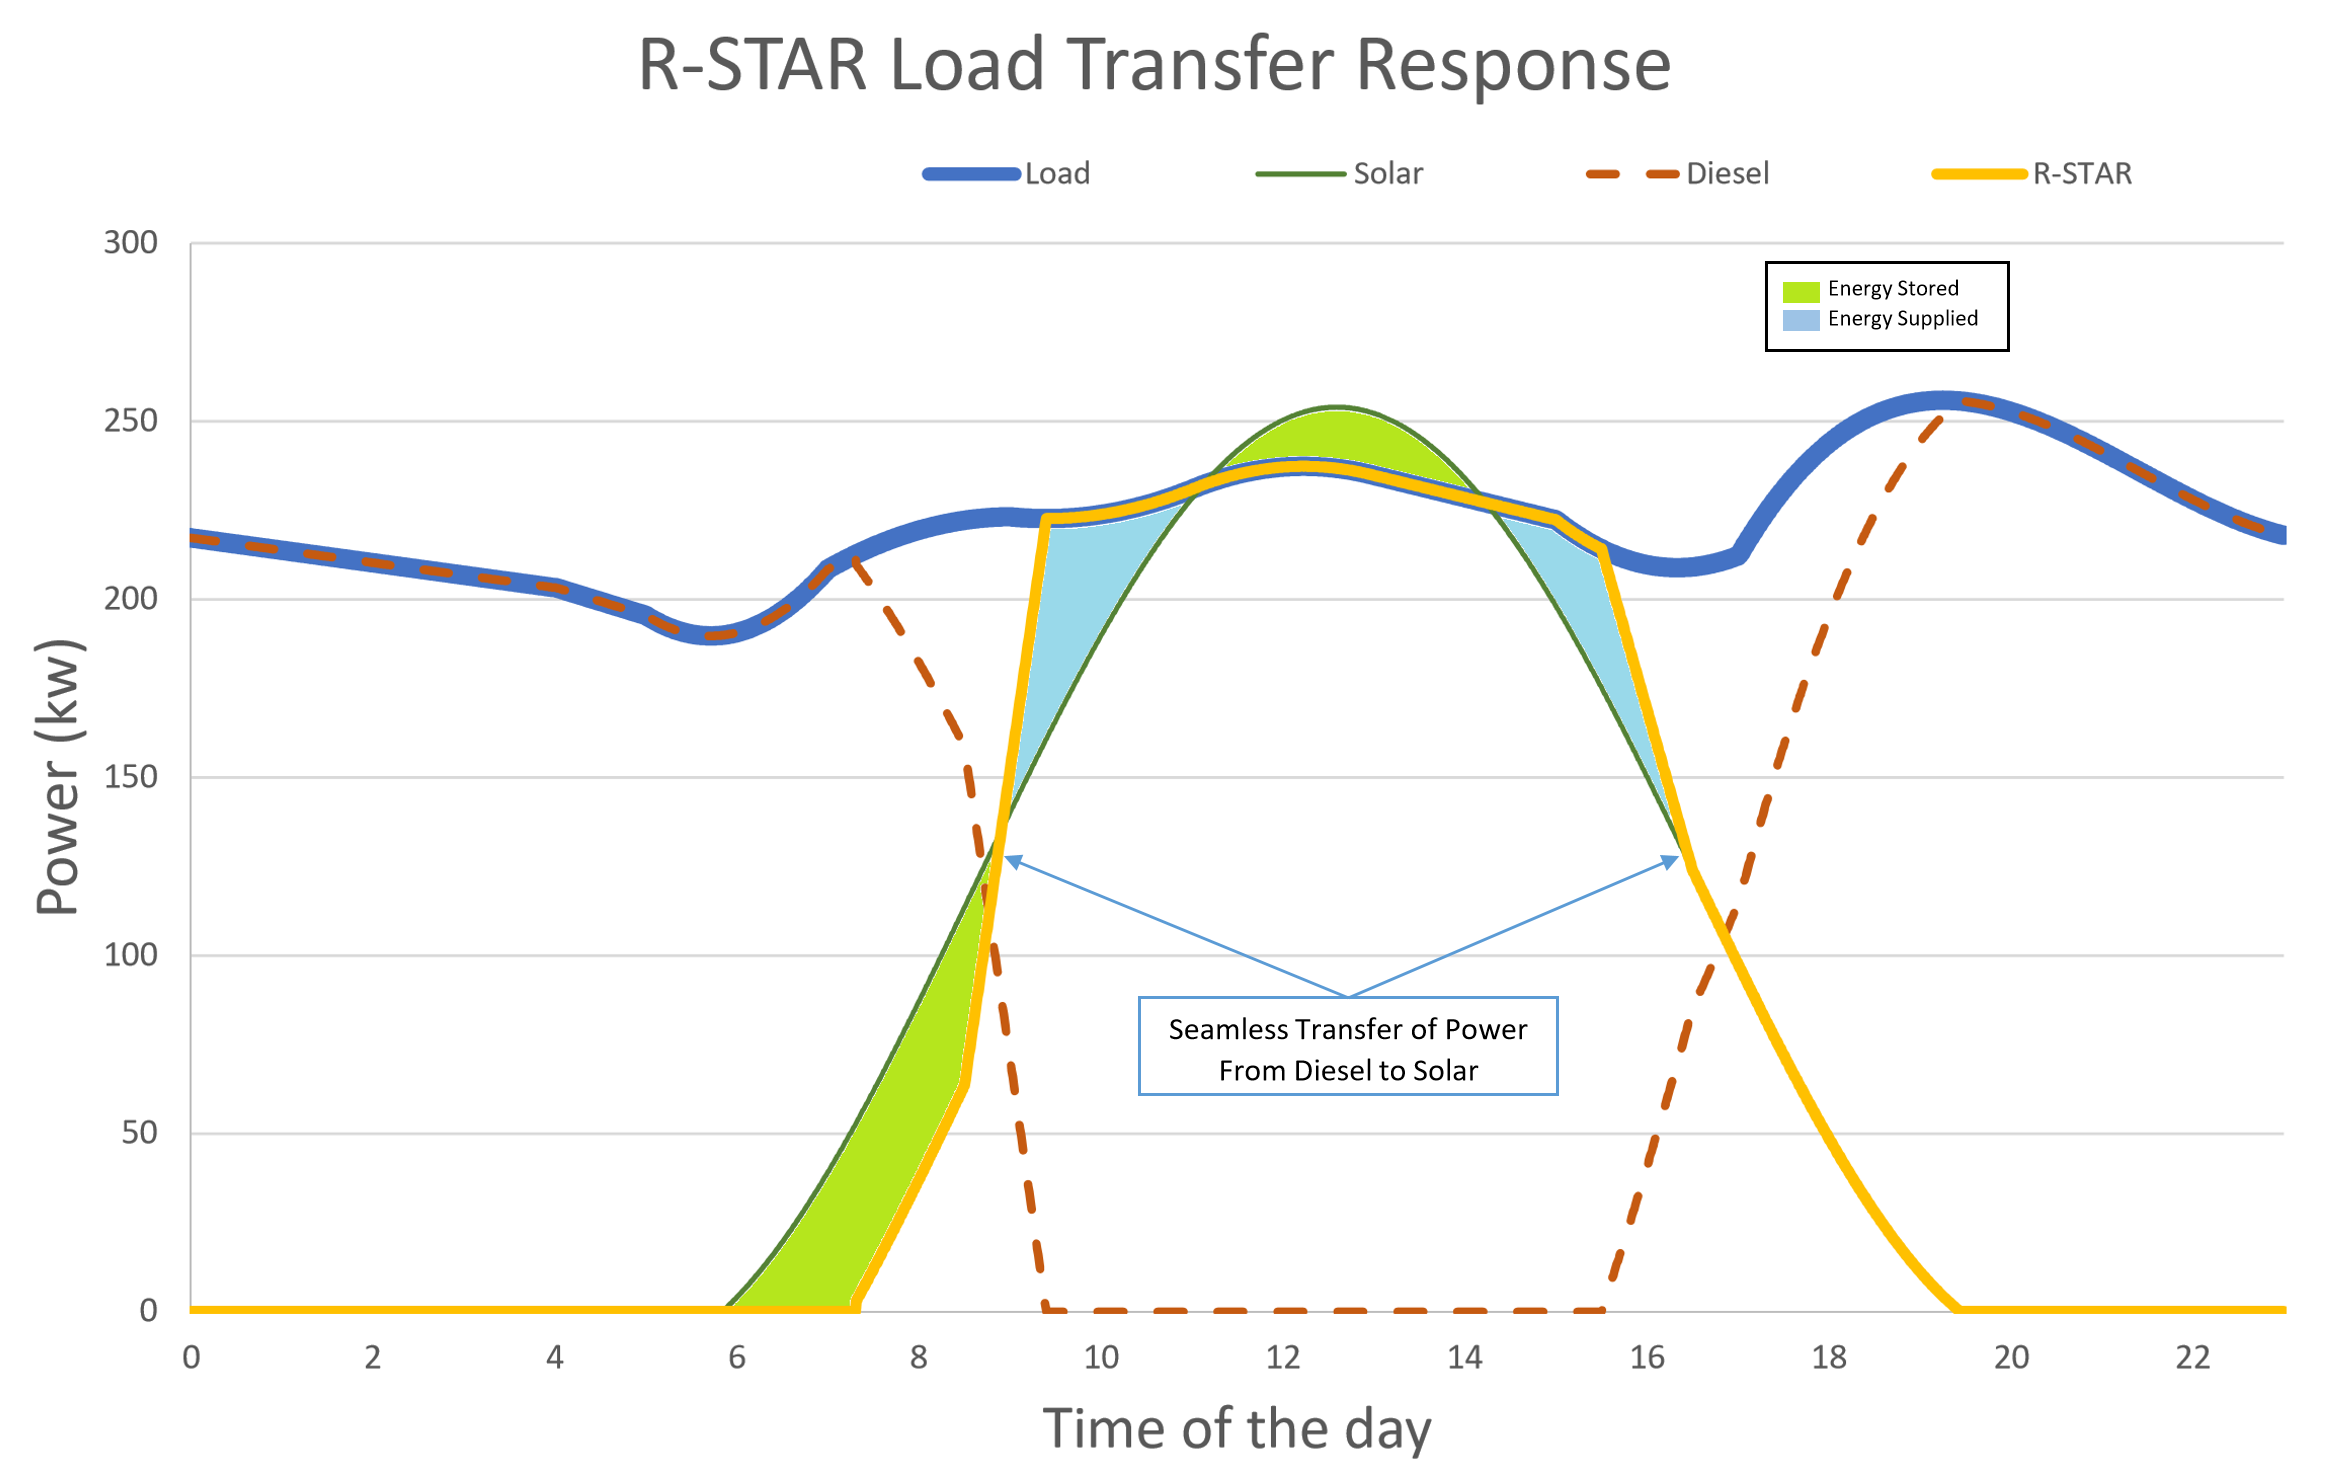 Seamless power transfer from Diesel Genset to R-STAR solar power in a 250kW system